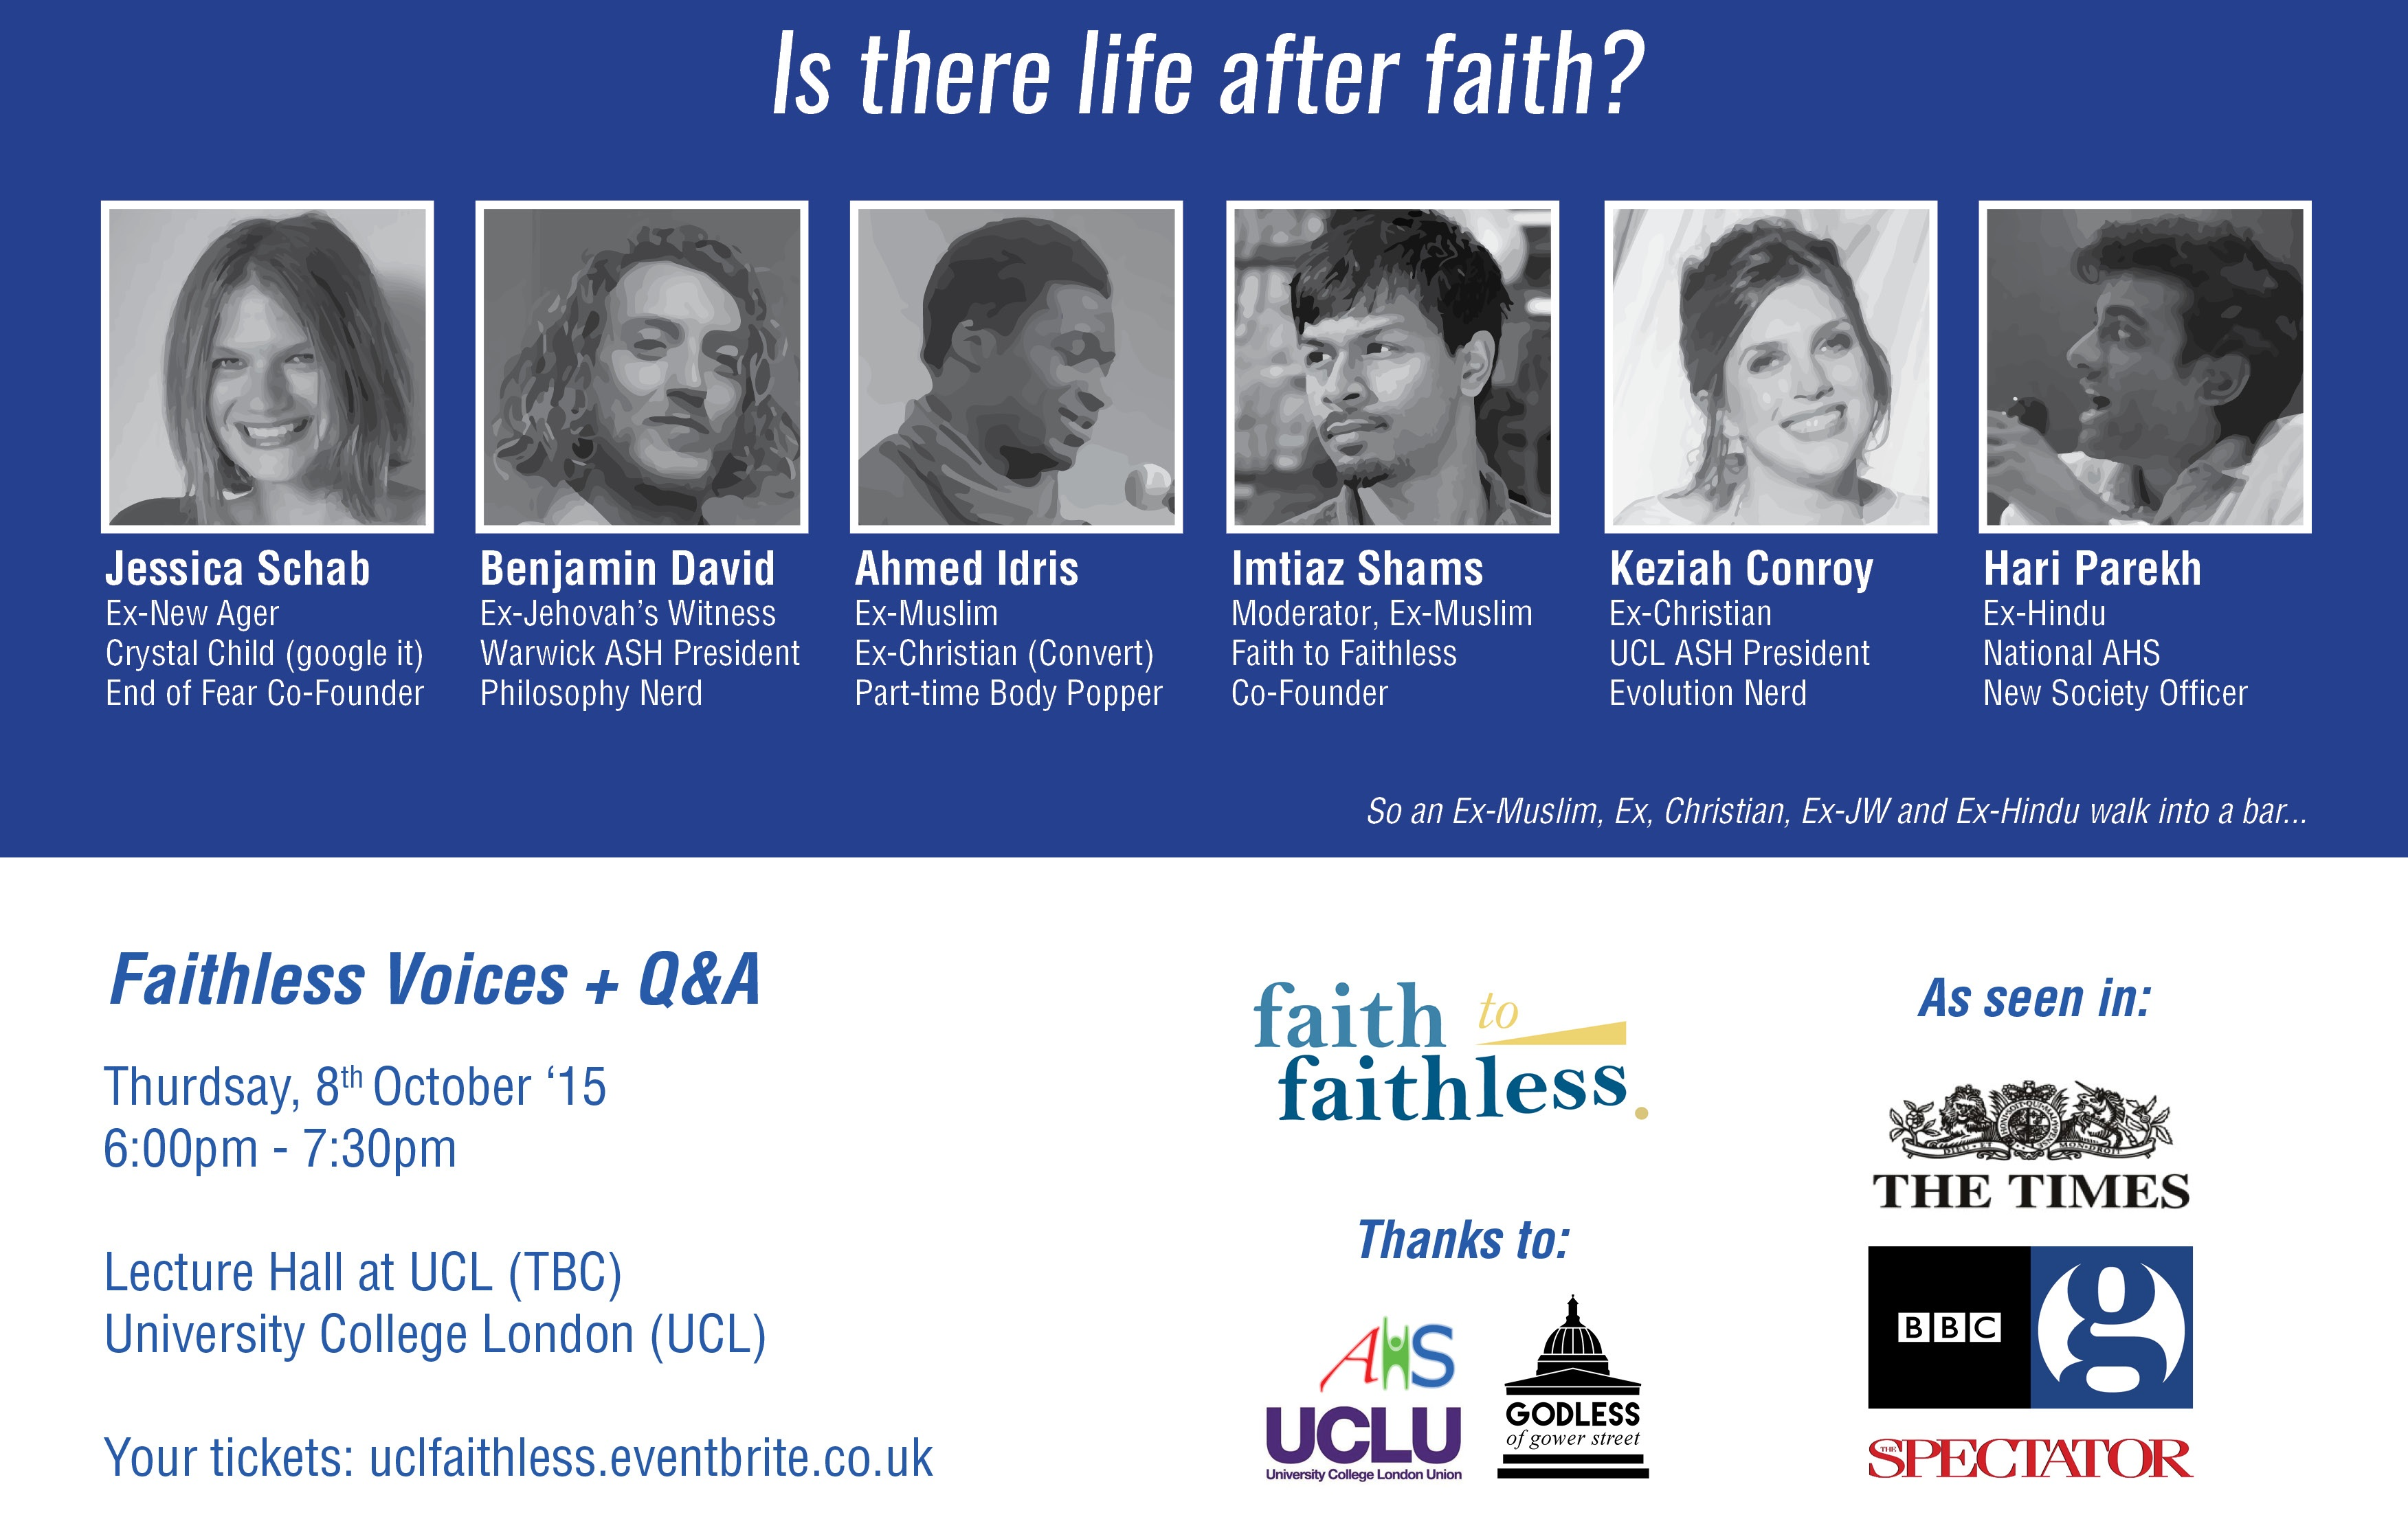 8 Oct '15 UCL: Faithless Voices: Featuring Ex Hindus, Jehovah's